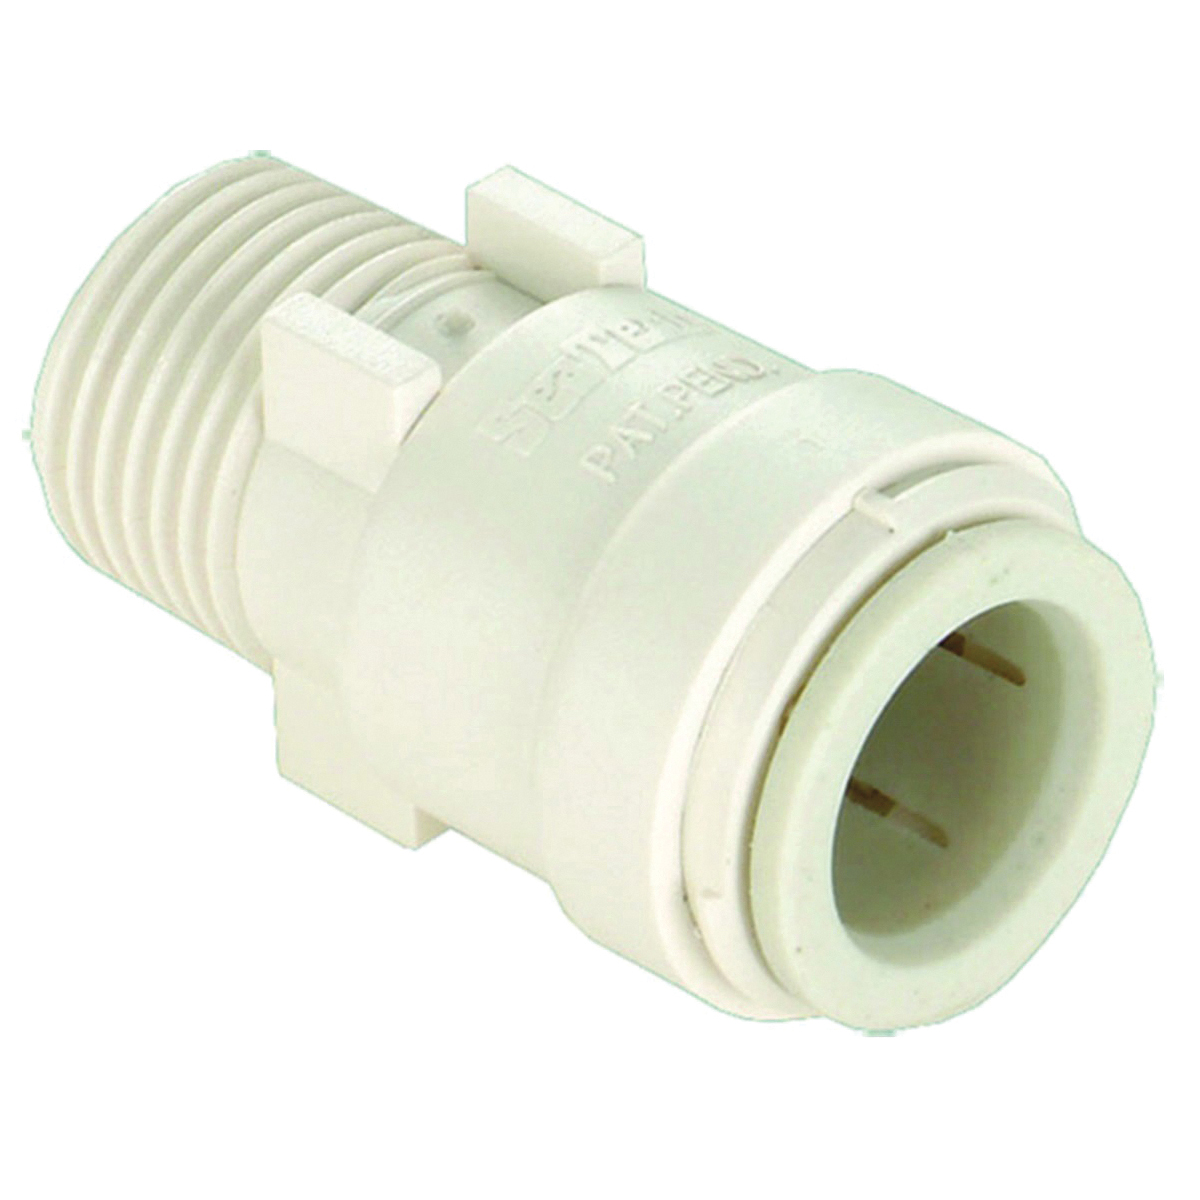 Picture of Watts 35 Series 3501-1008 Male Connector, 1/2 in CTS, 1/2 in NPT